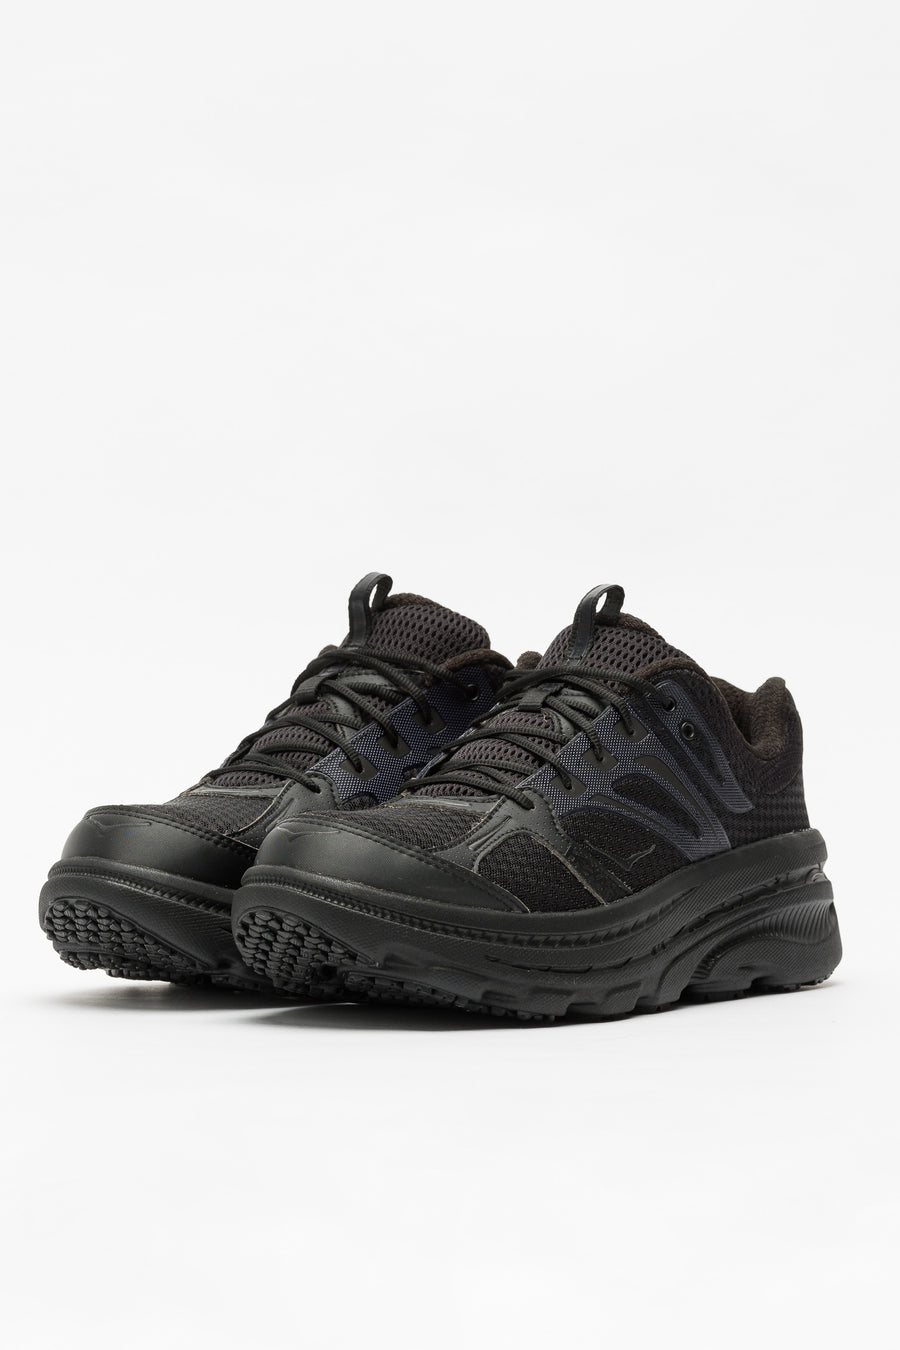 Hoka One One EG Bondi in Black - Notre